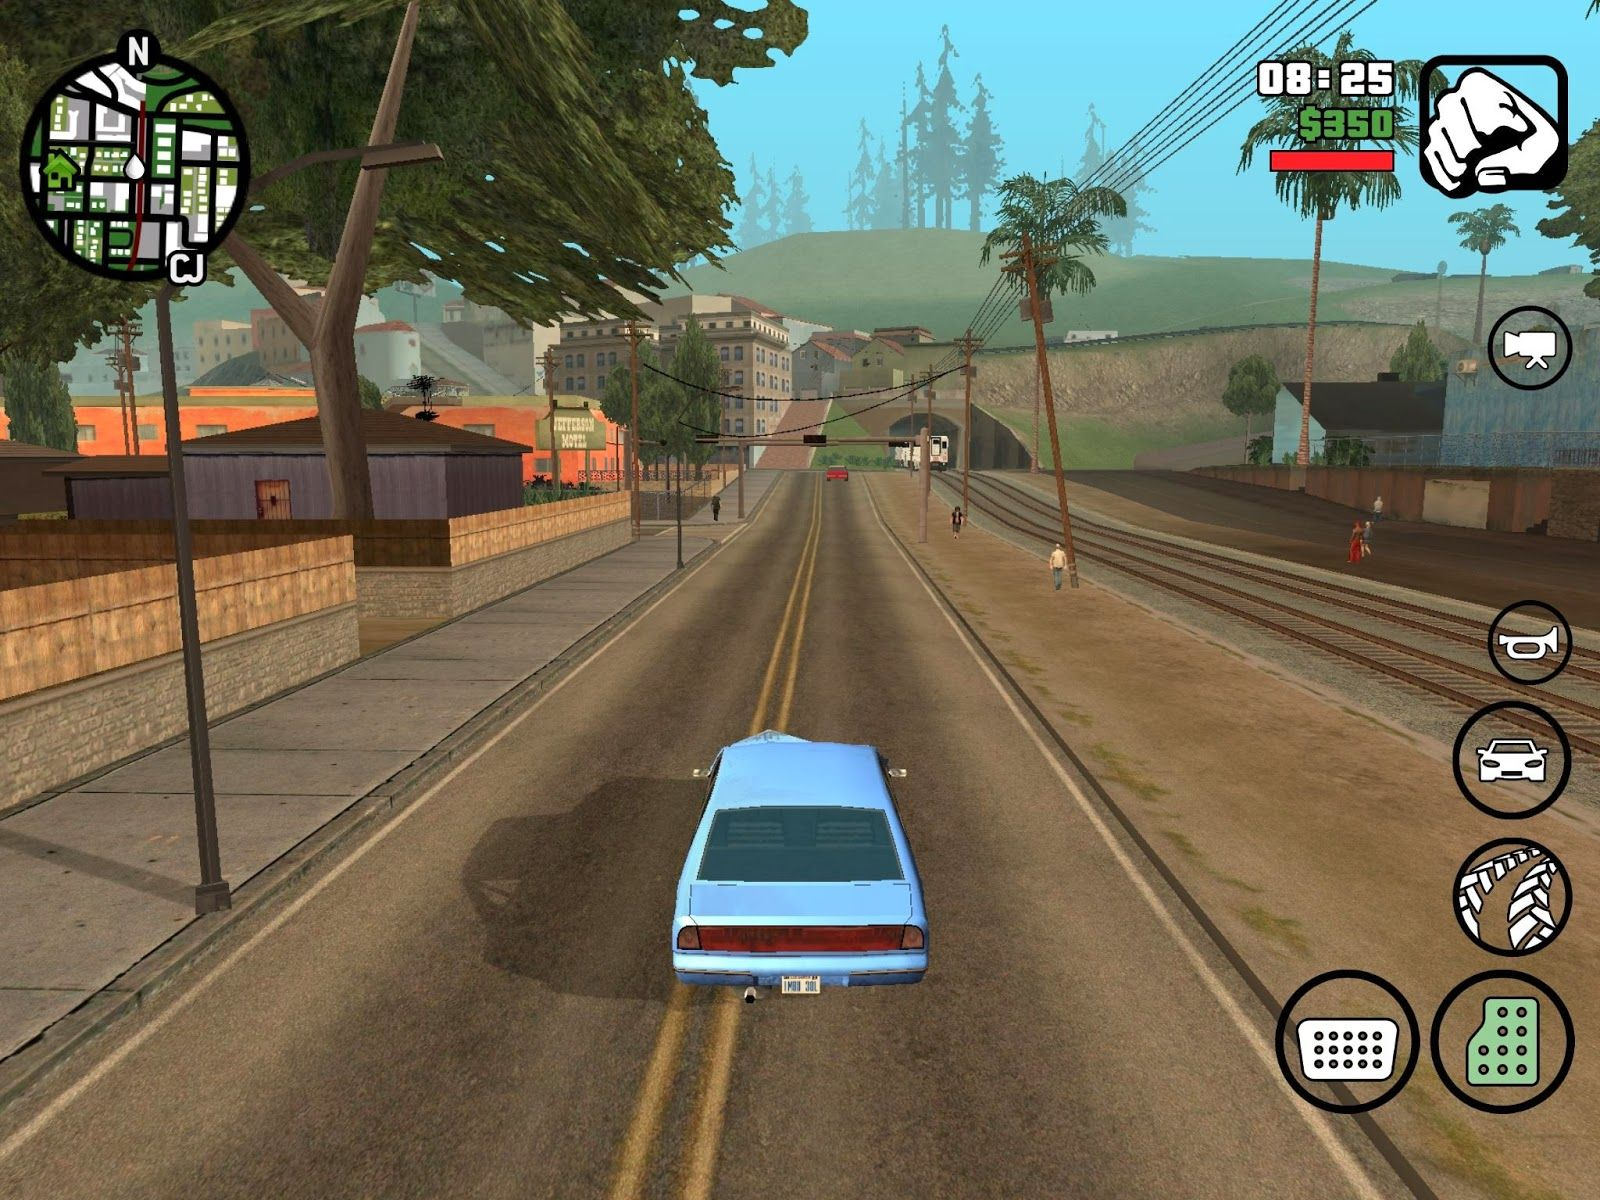 gta sa cheat apk without root